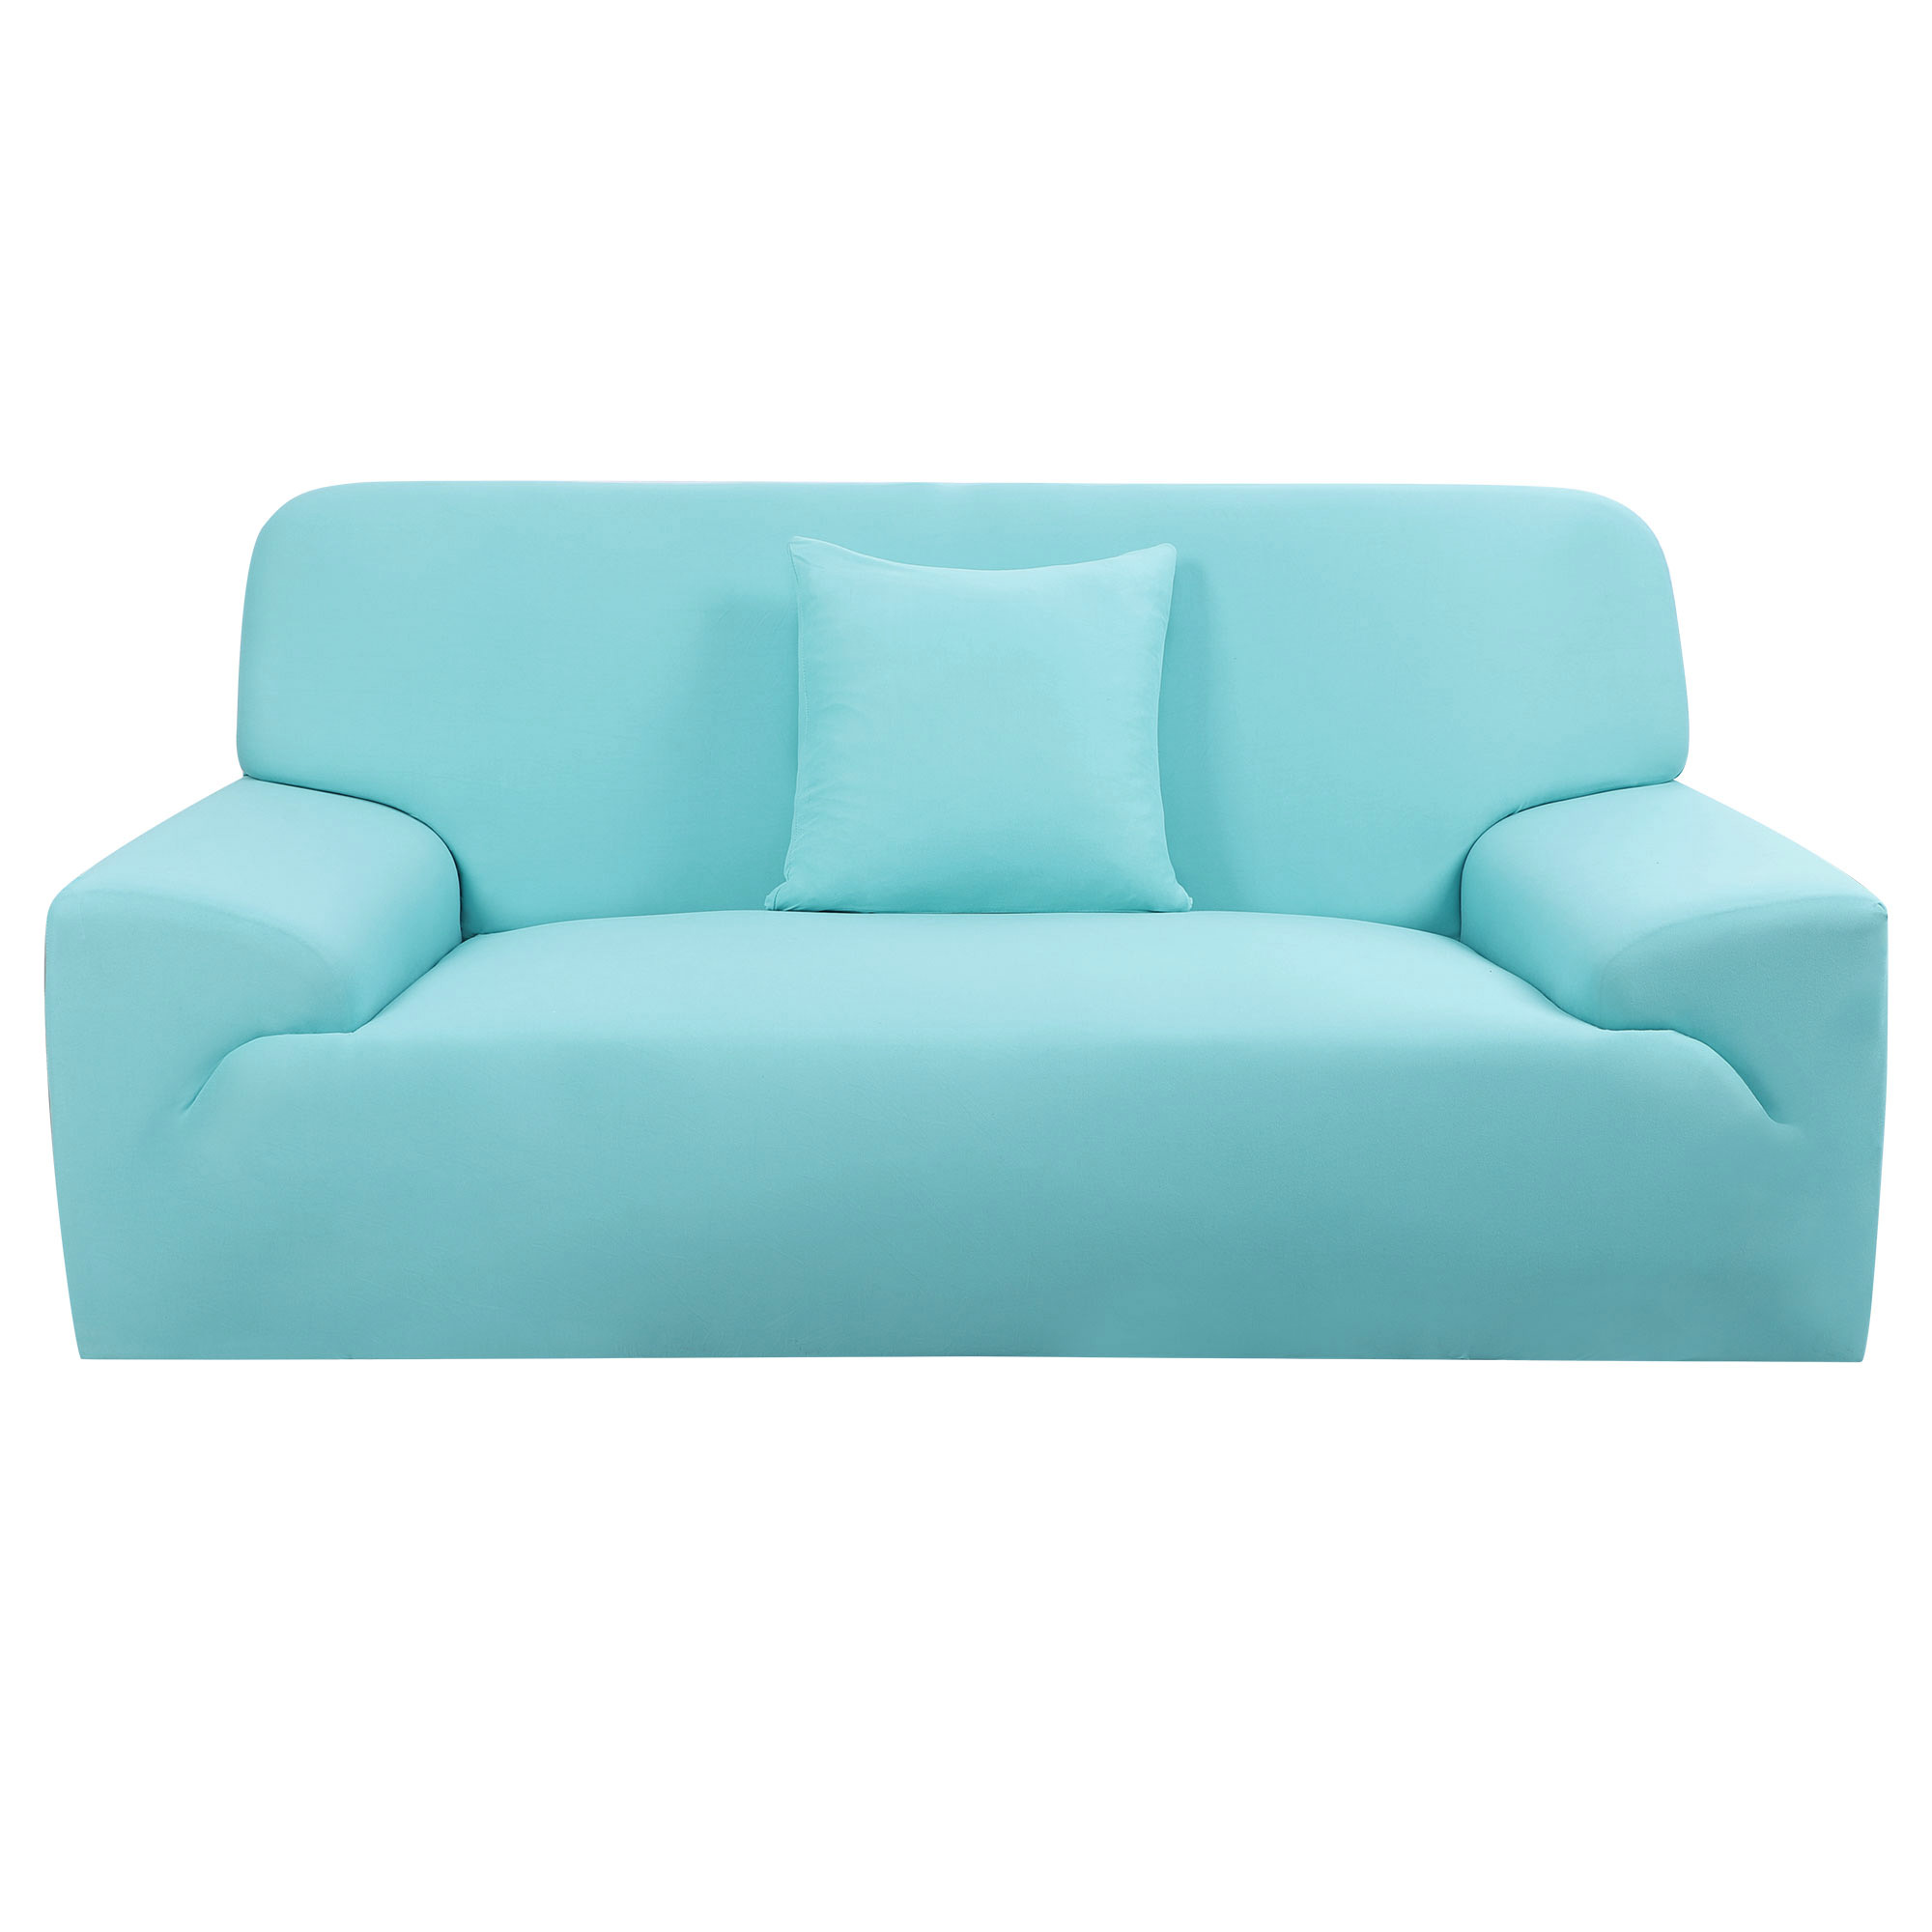 Home Furniture Sofa Couch Cover Slipcover Protector Blue 74''-90''